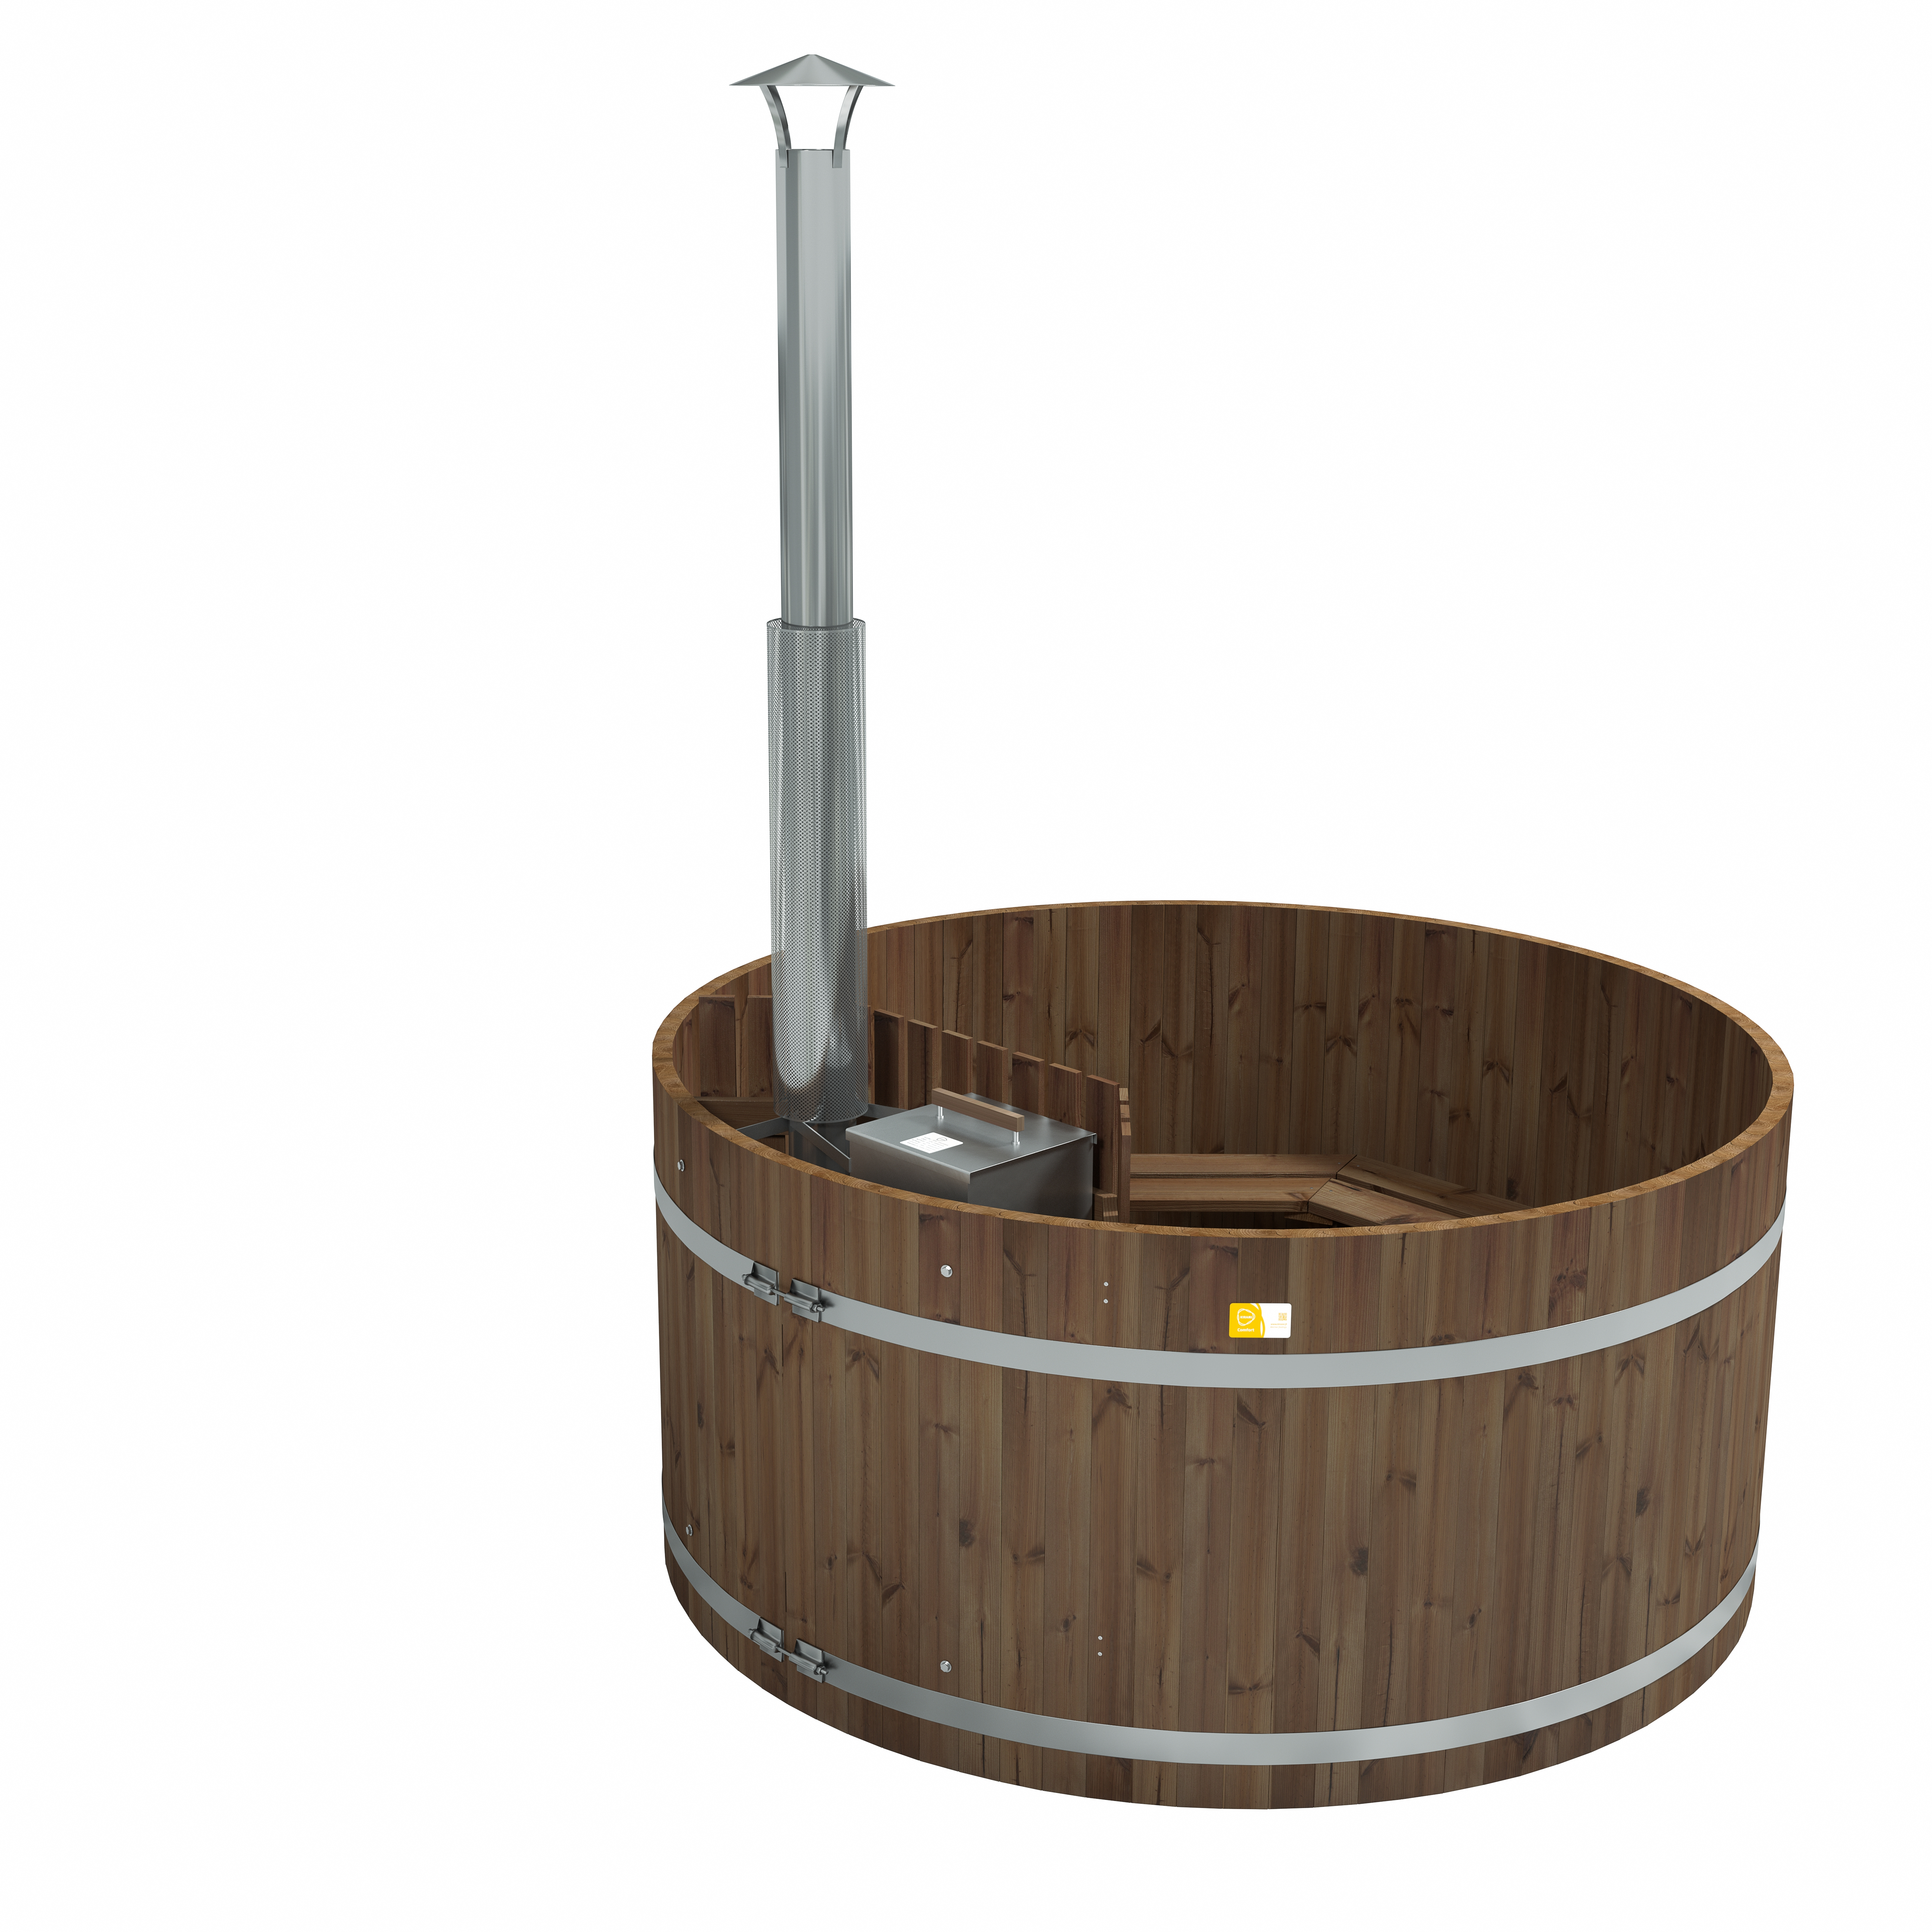 Kirami's Original Woody XL is traditional hot tub for a larger group.